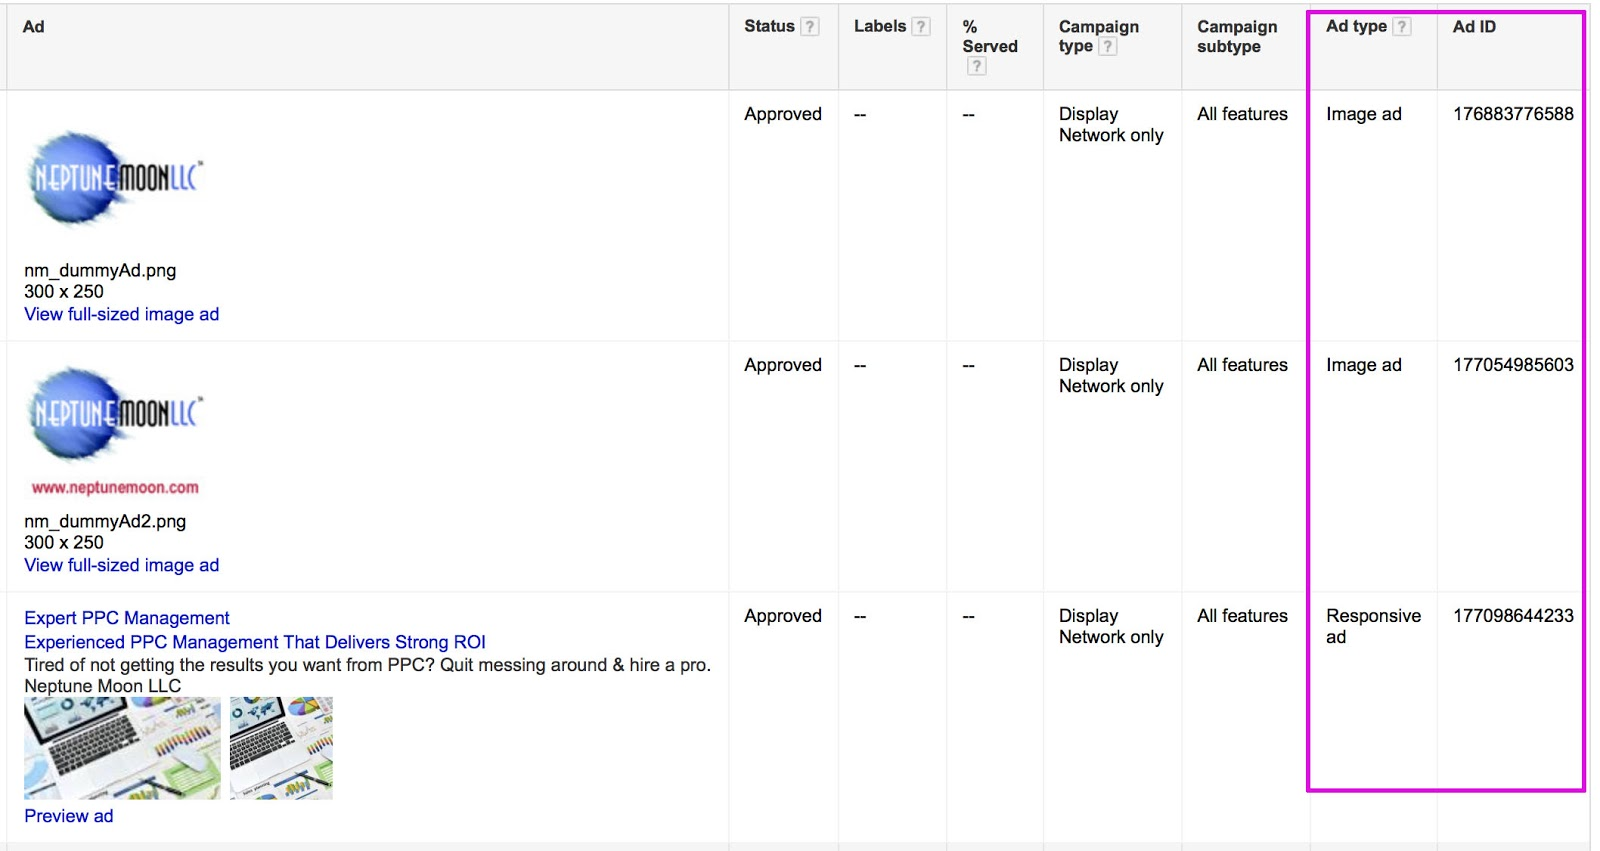 This is how it will look adding two new columns: Ad Type and Ad ID